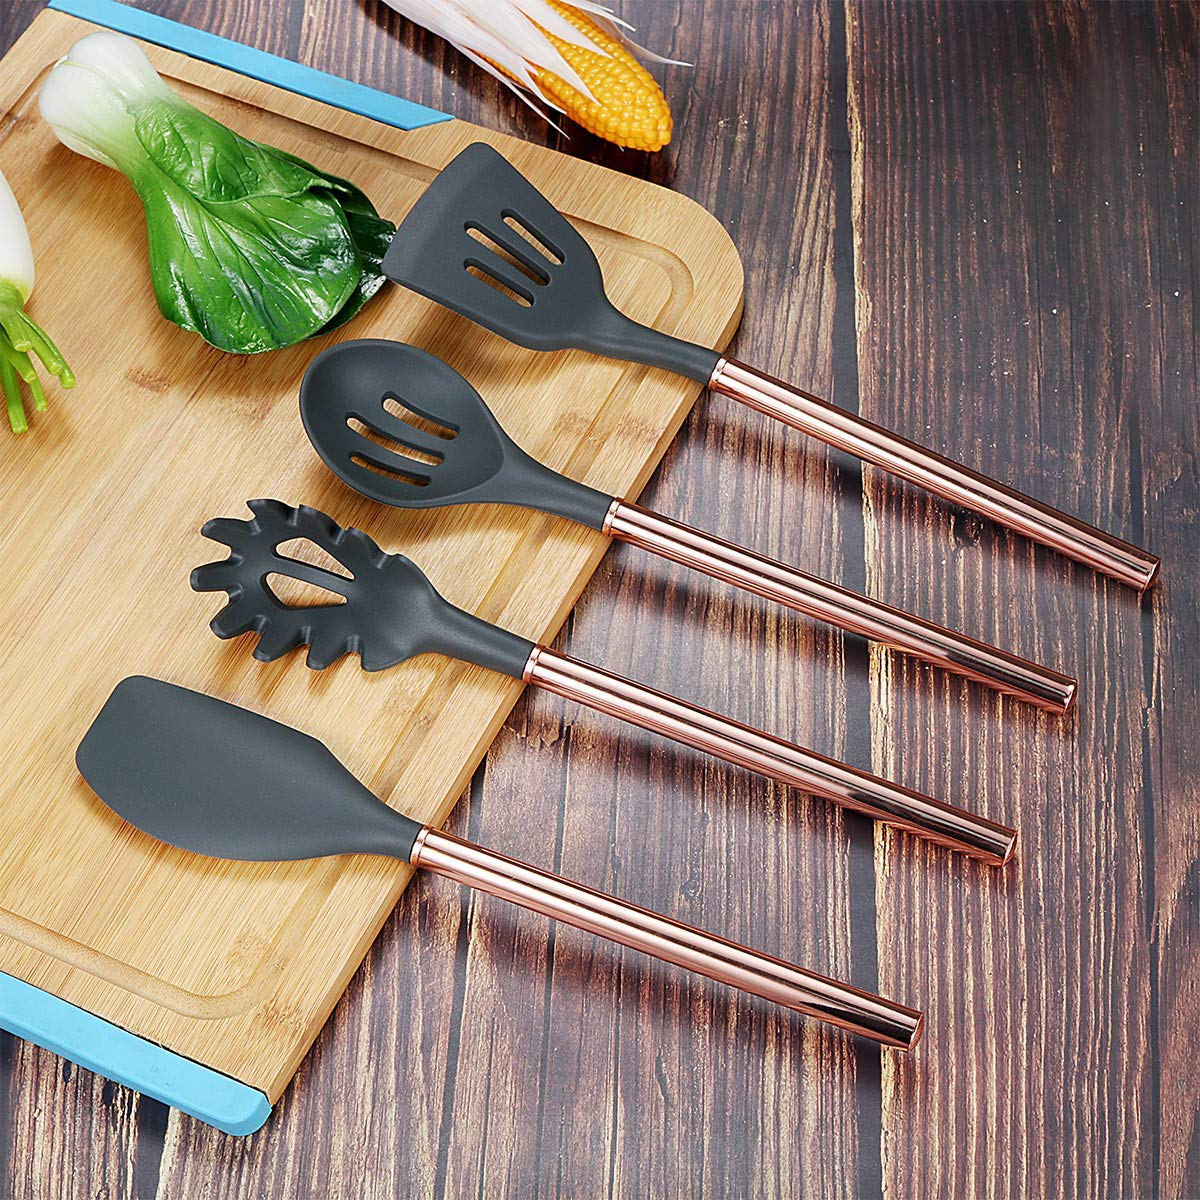 core silicone kitchen utensils